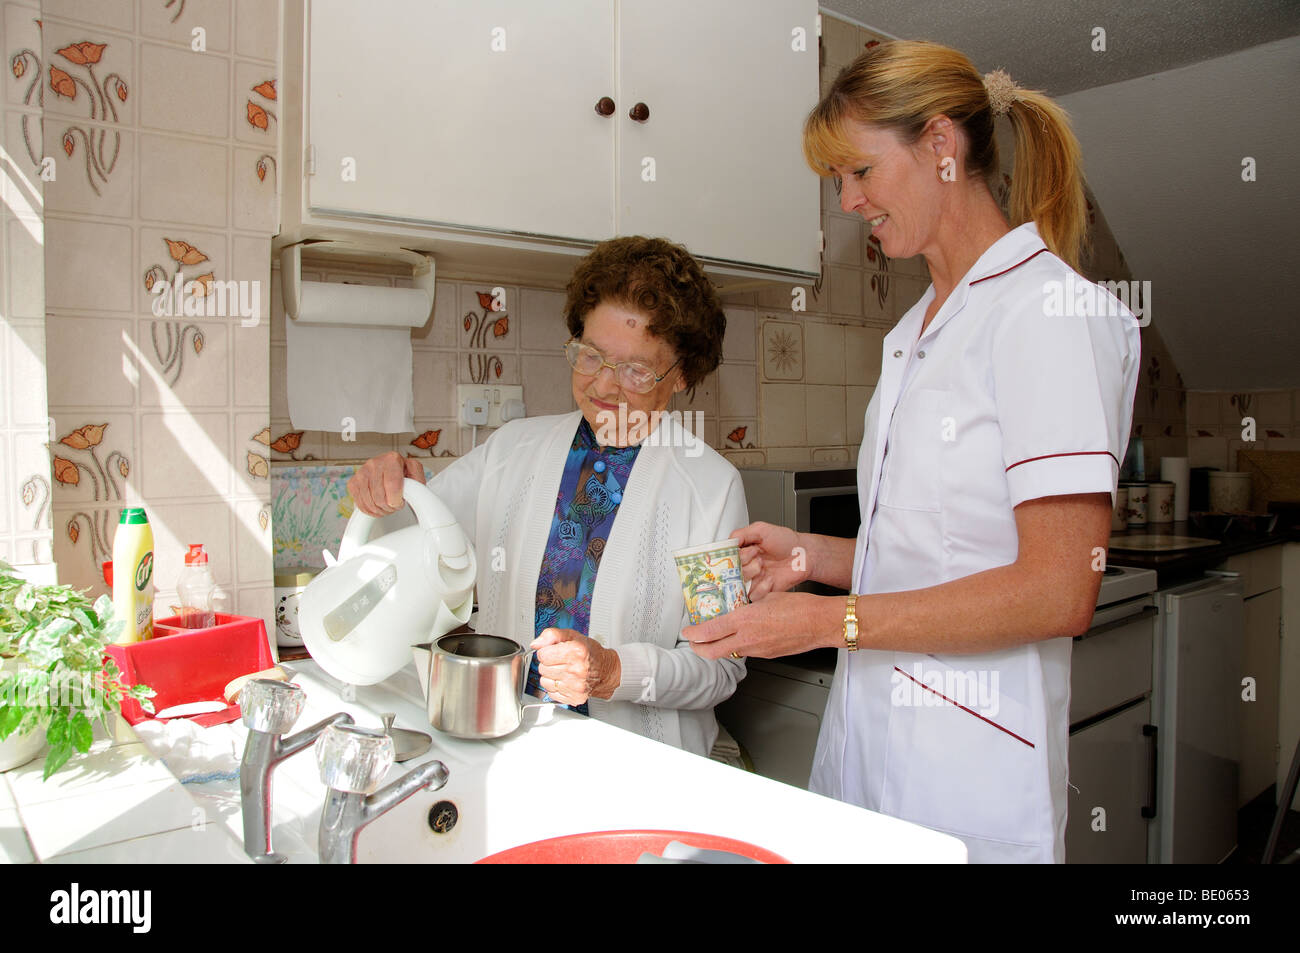 Elderly woman in kitchen with a social services carer pouring boiling water into a teapot - Stock Image